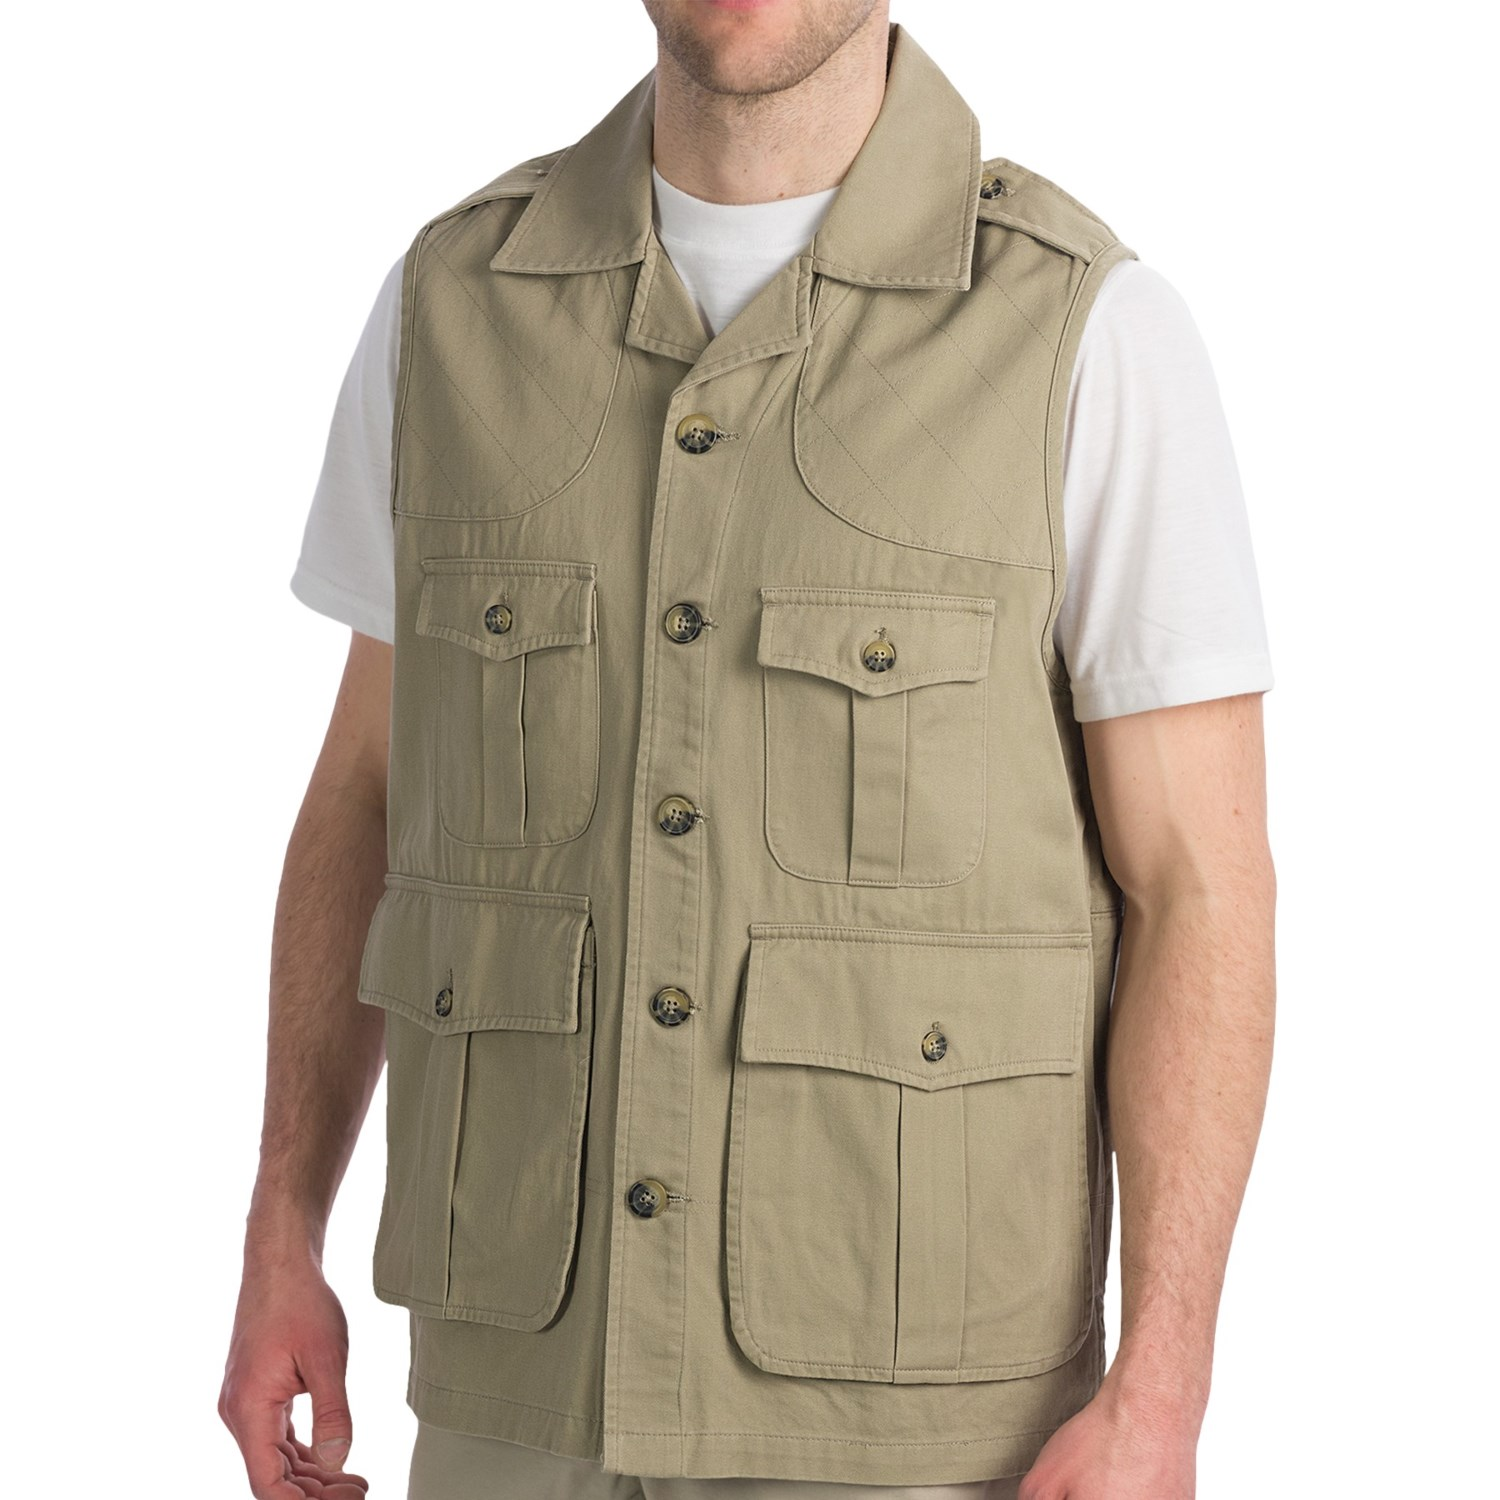 Find great deals on eBay for mens safari vest. Shop with confidence.